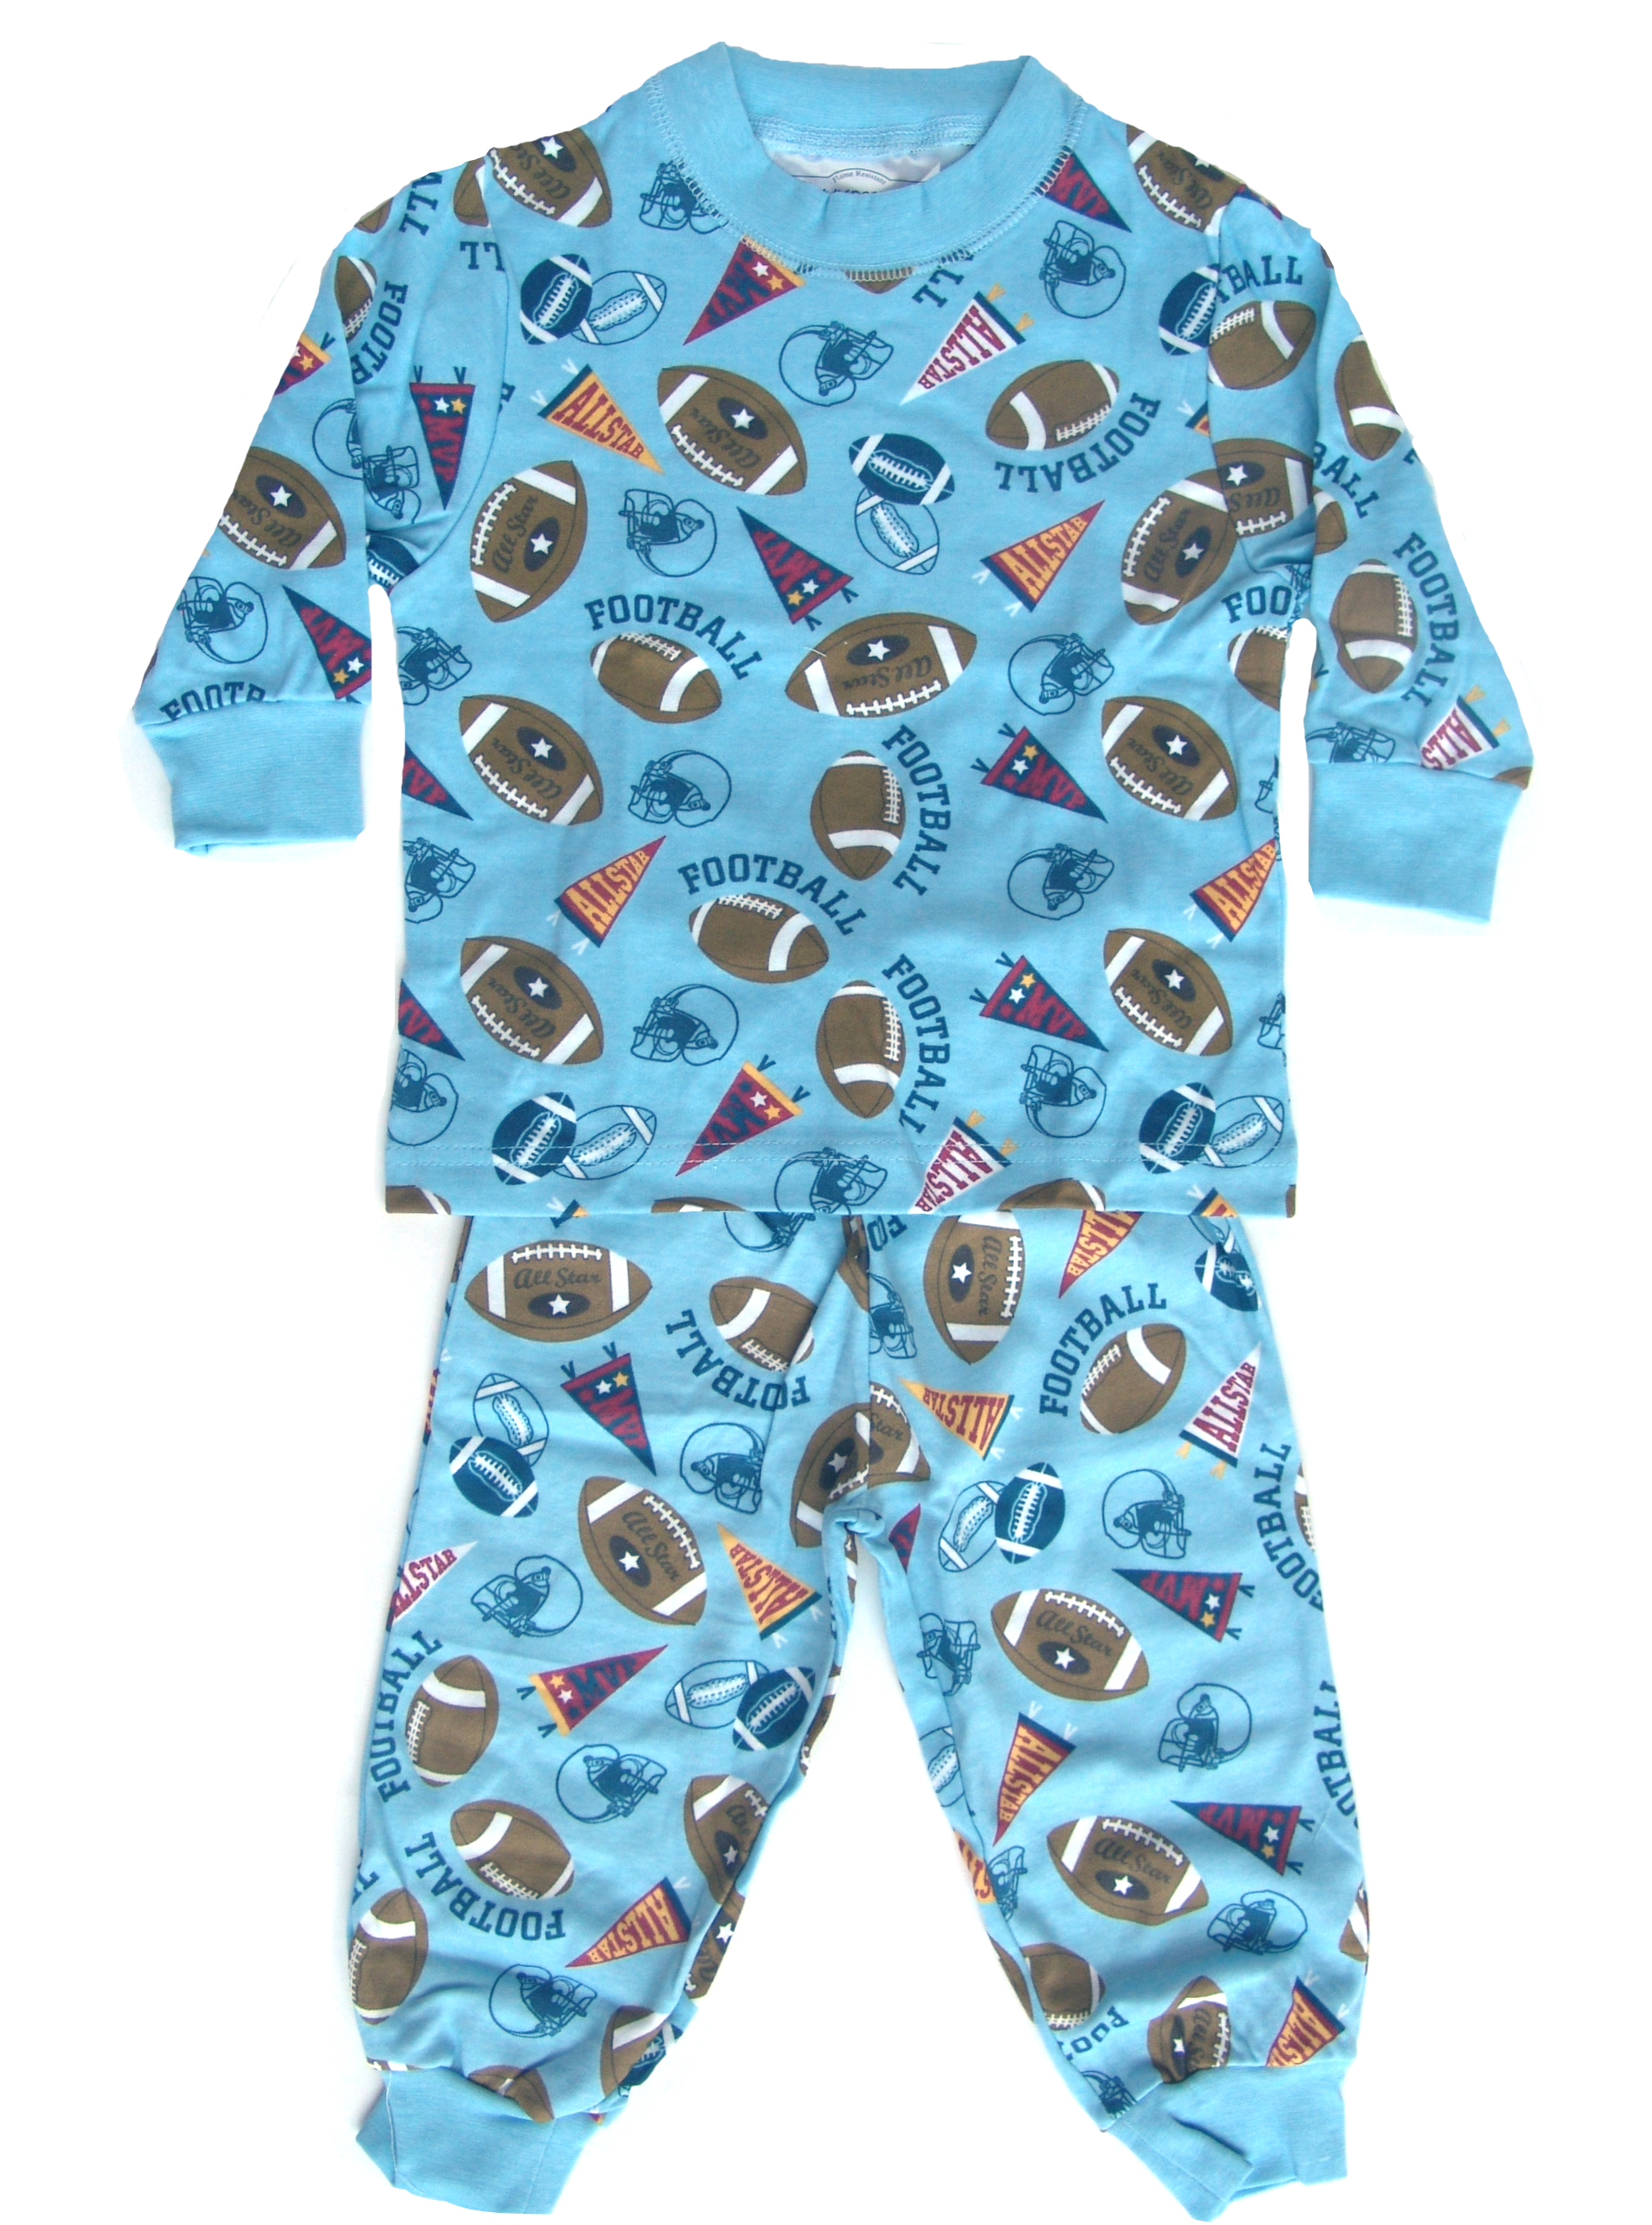 Find great deals on eBay for pajamas for boys. Shop with confidence.